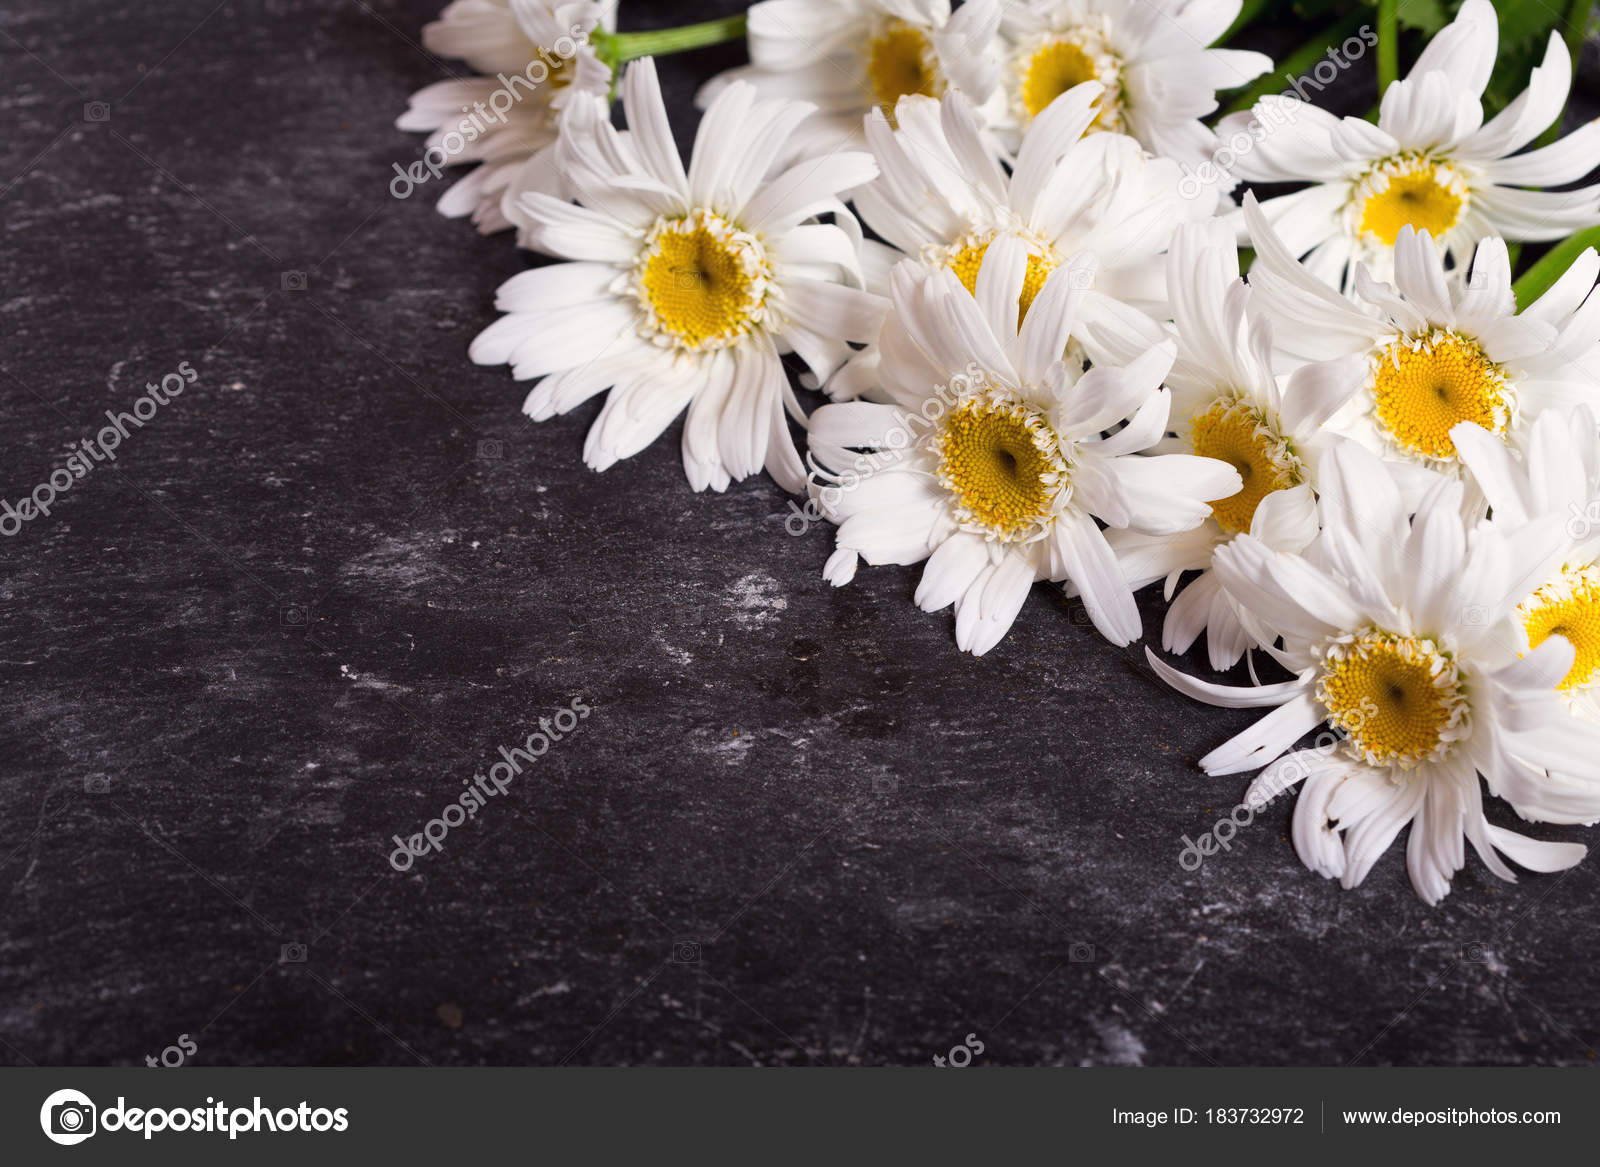 Daisy flowers on dark table stock photo nitrub 183732972 bouquet of daisy flowers on dark table photo by nitrub izmirmasajfo